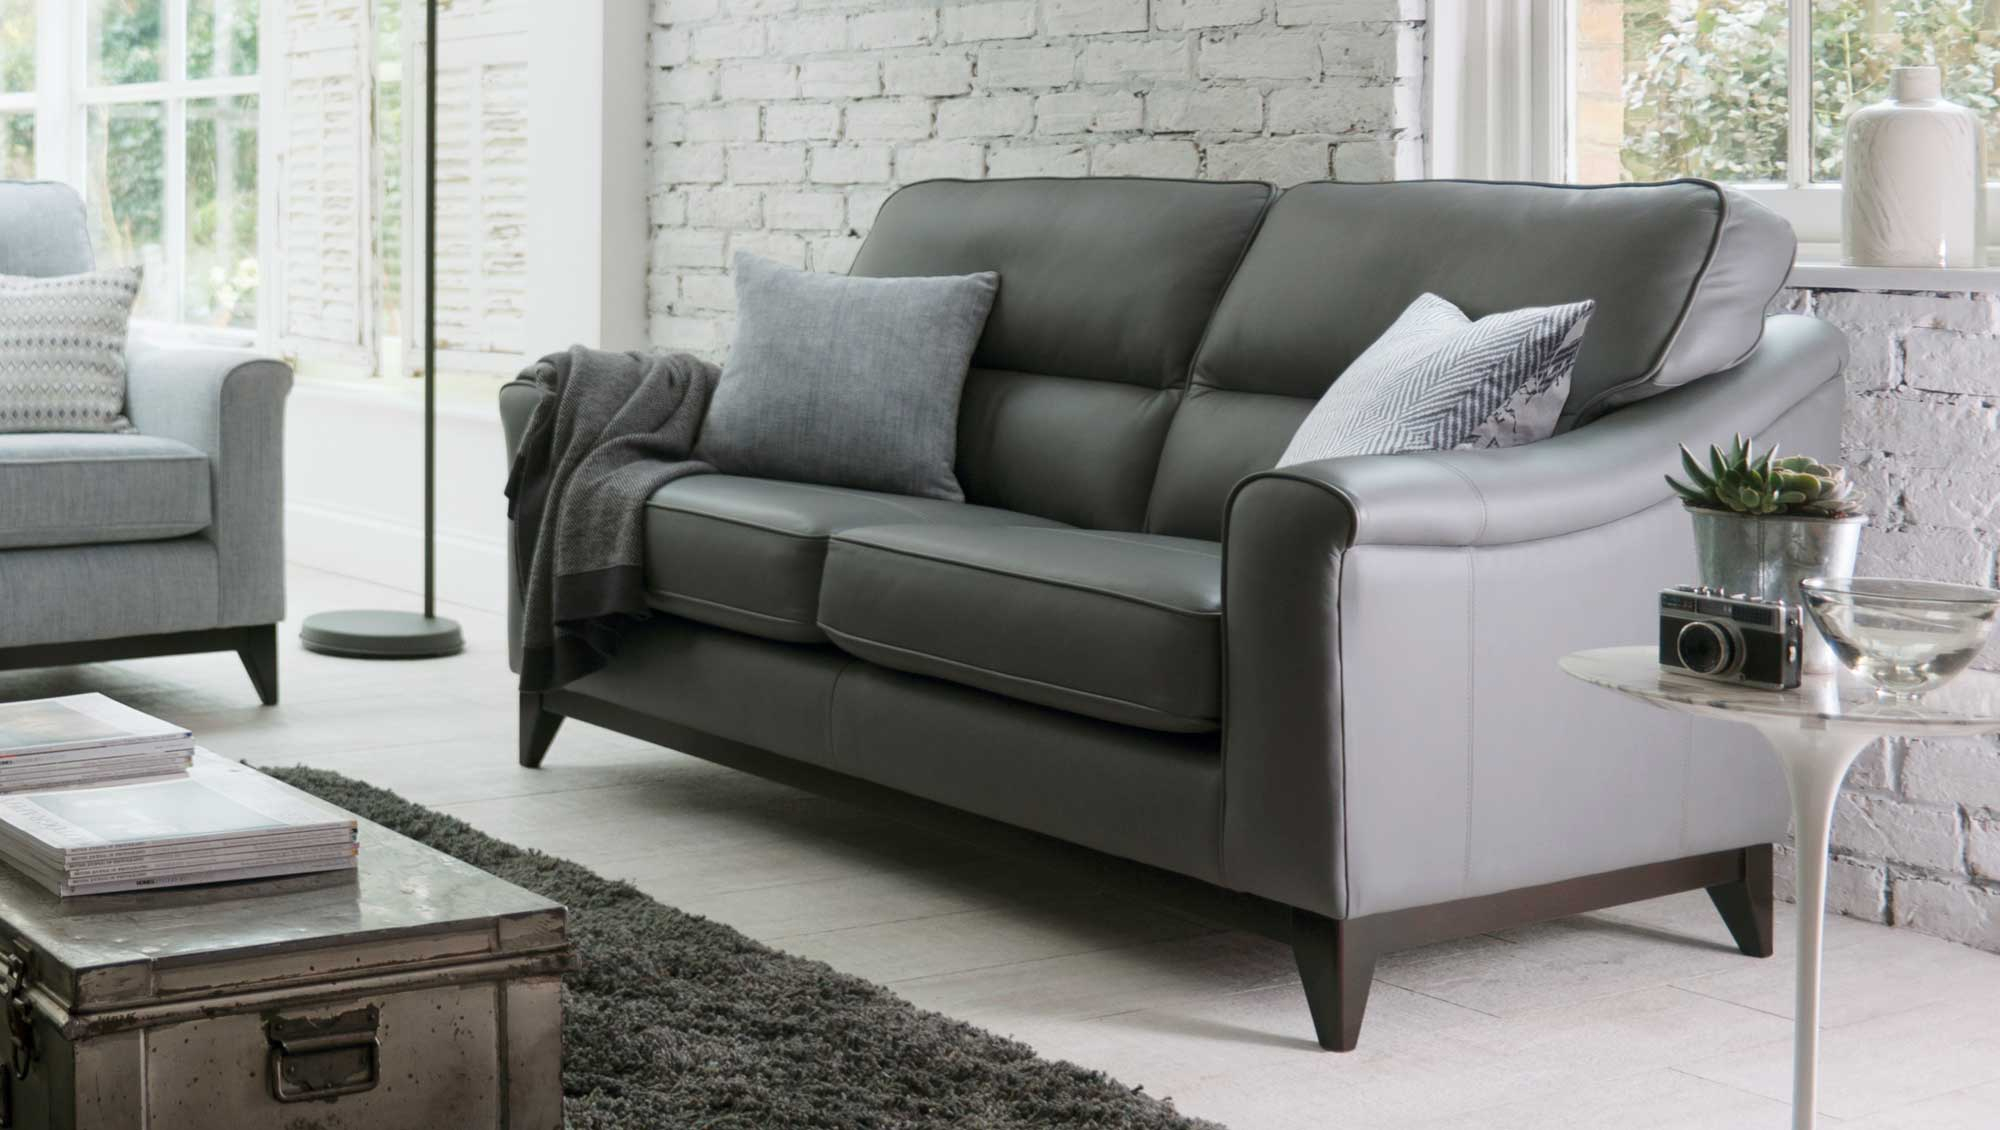 Parker Knoll Montana – Leather Ranges – Sofas & Chairs | Tr Hayes Within Parker Sofa Chairs (Image 12 of 20)